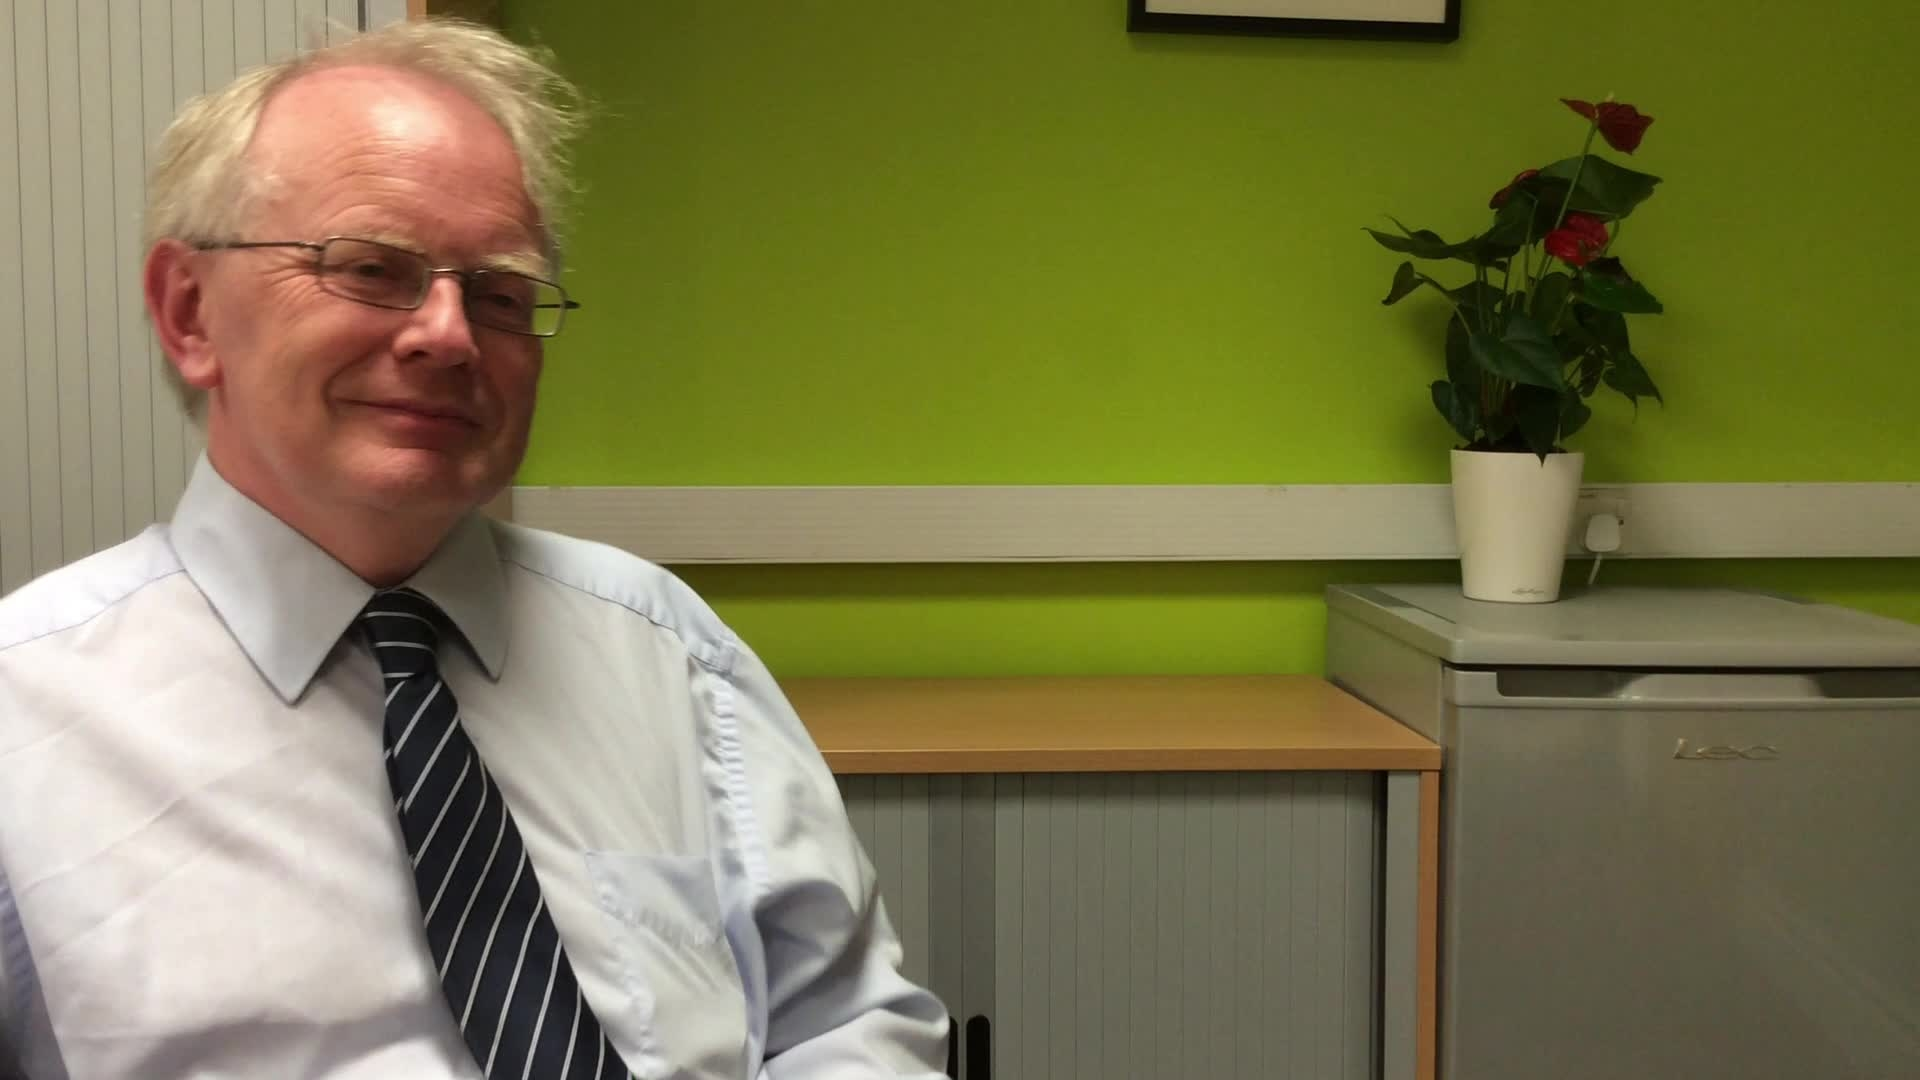 Robert Dowling, Engaging with the University